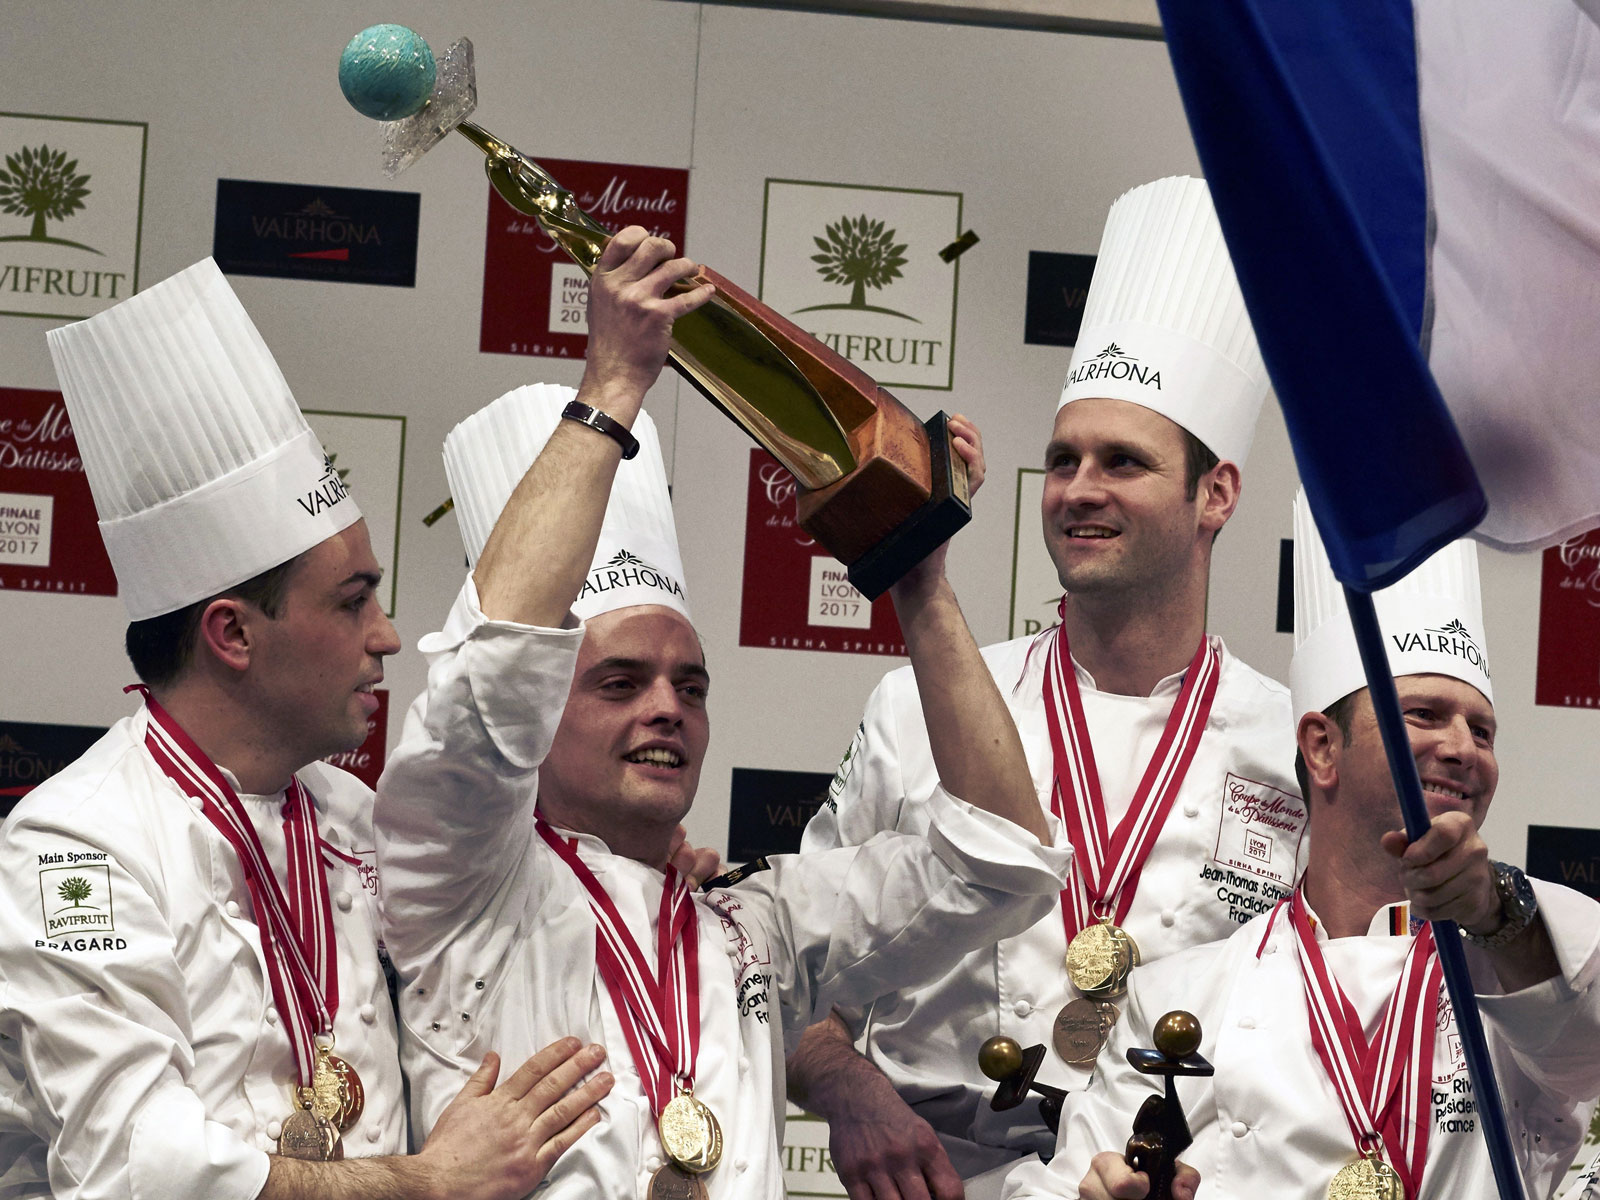 FRANCE-GASTRONOMY-PASTRIES-CONTEST